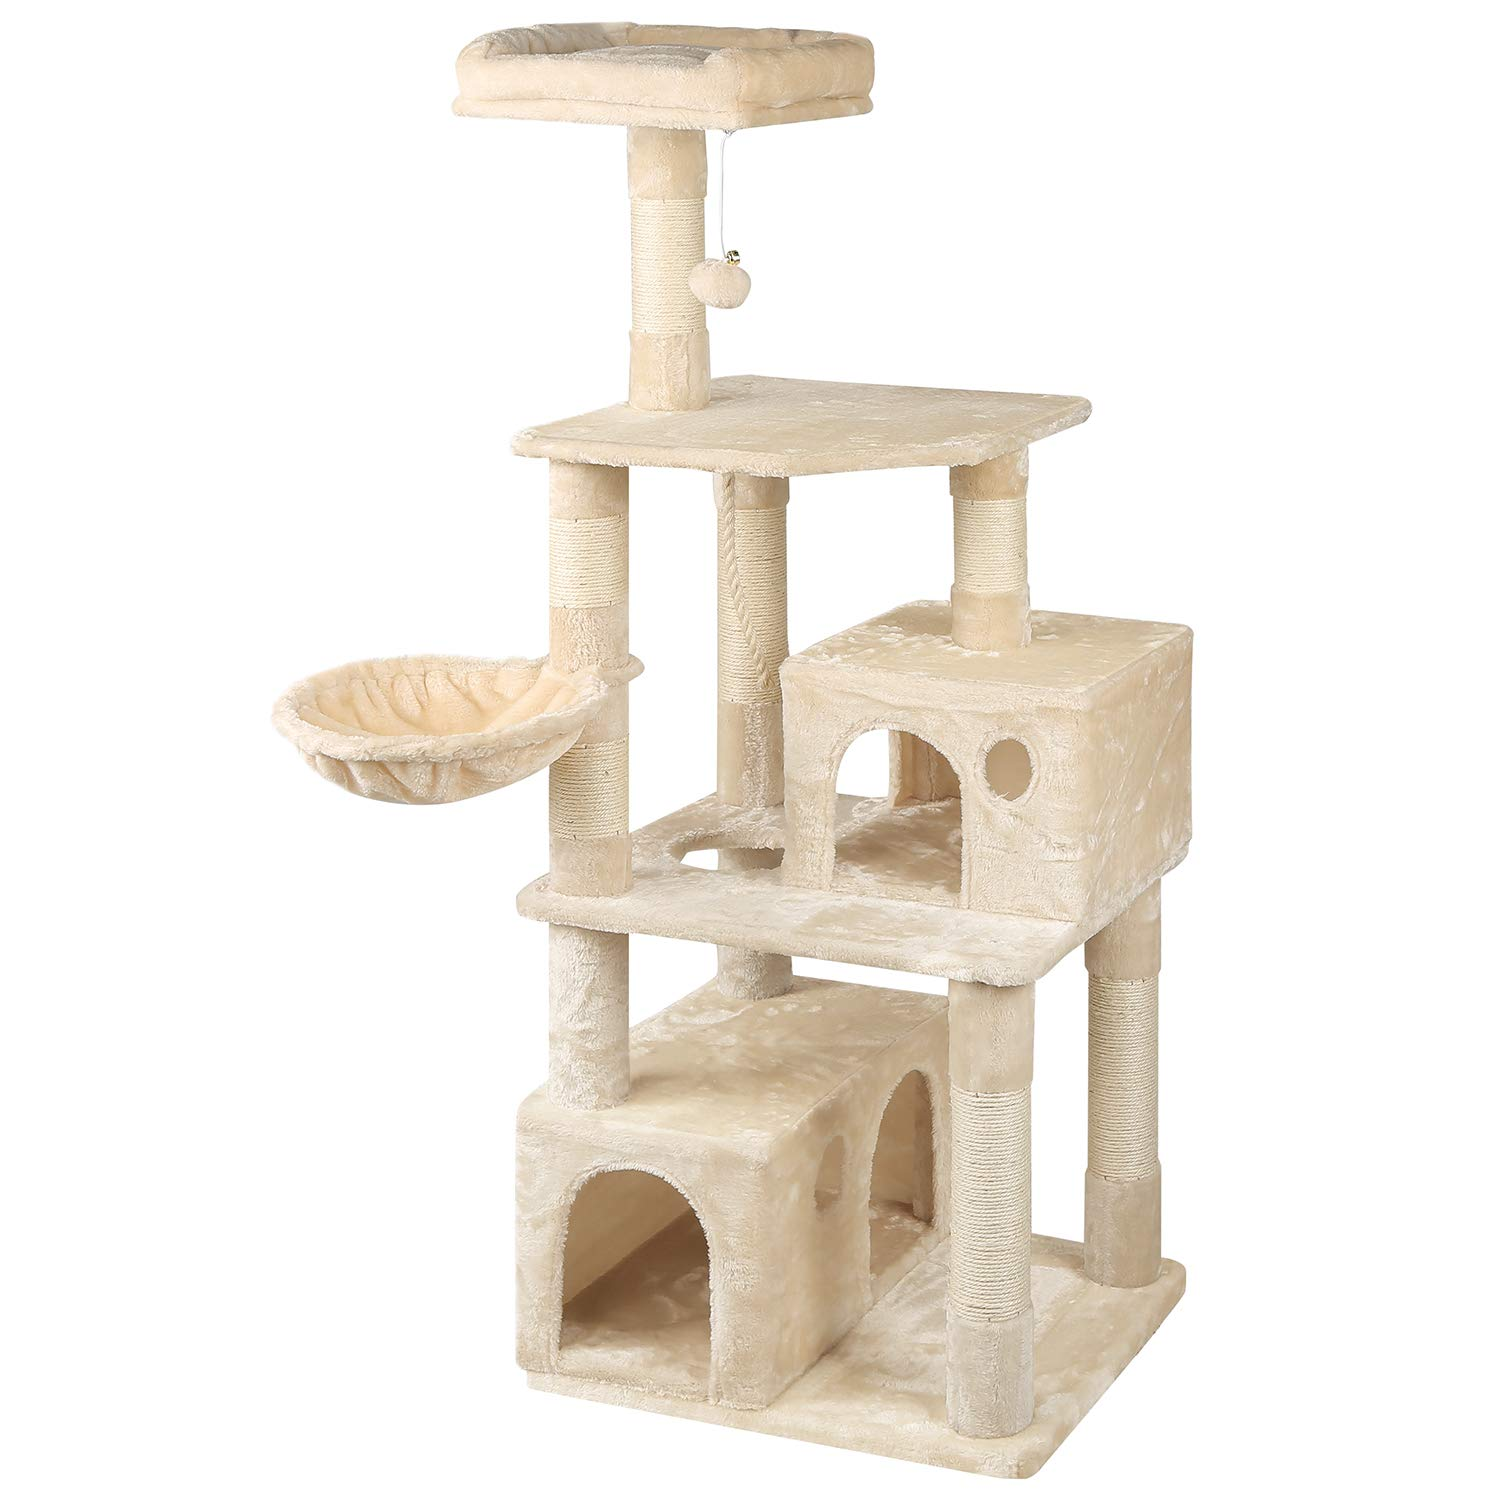 WLIVE 59'' Large Cat Tree Condo with Sisal Scratching Posts, 2 Plush Condos and Basket Lounger, Cat Tower Furniture WF062A